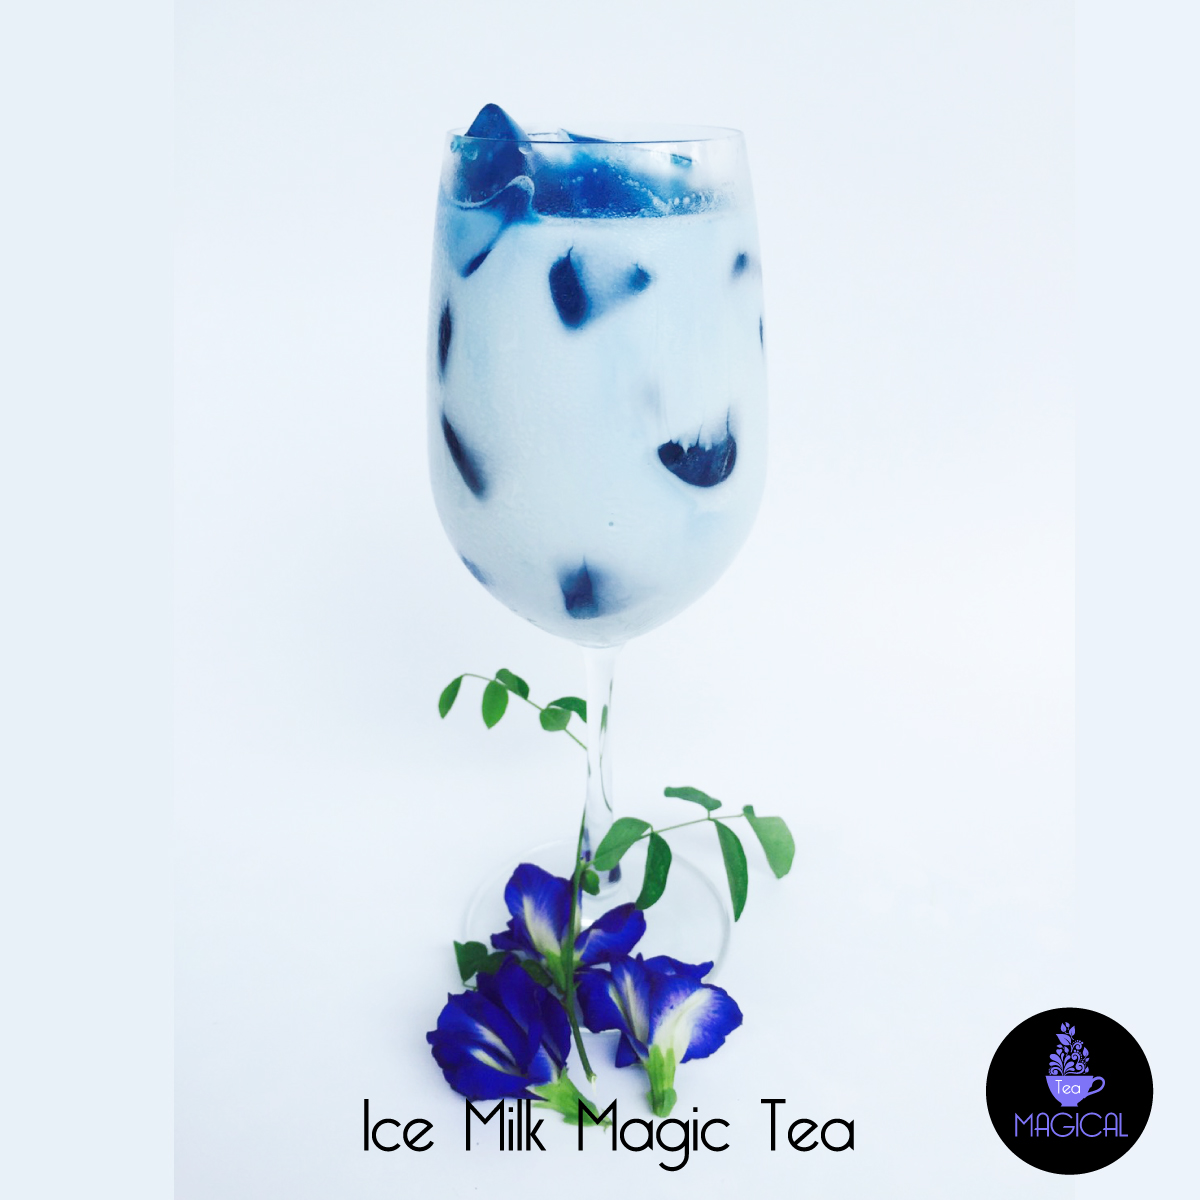 Ice Milk Magic Tea